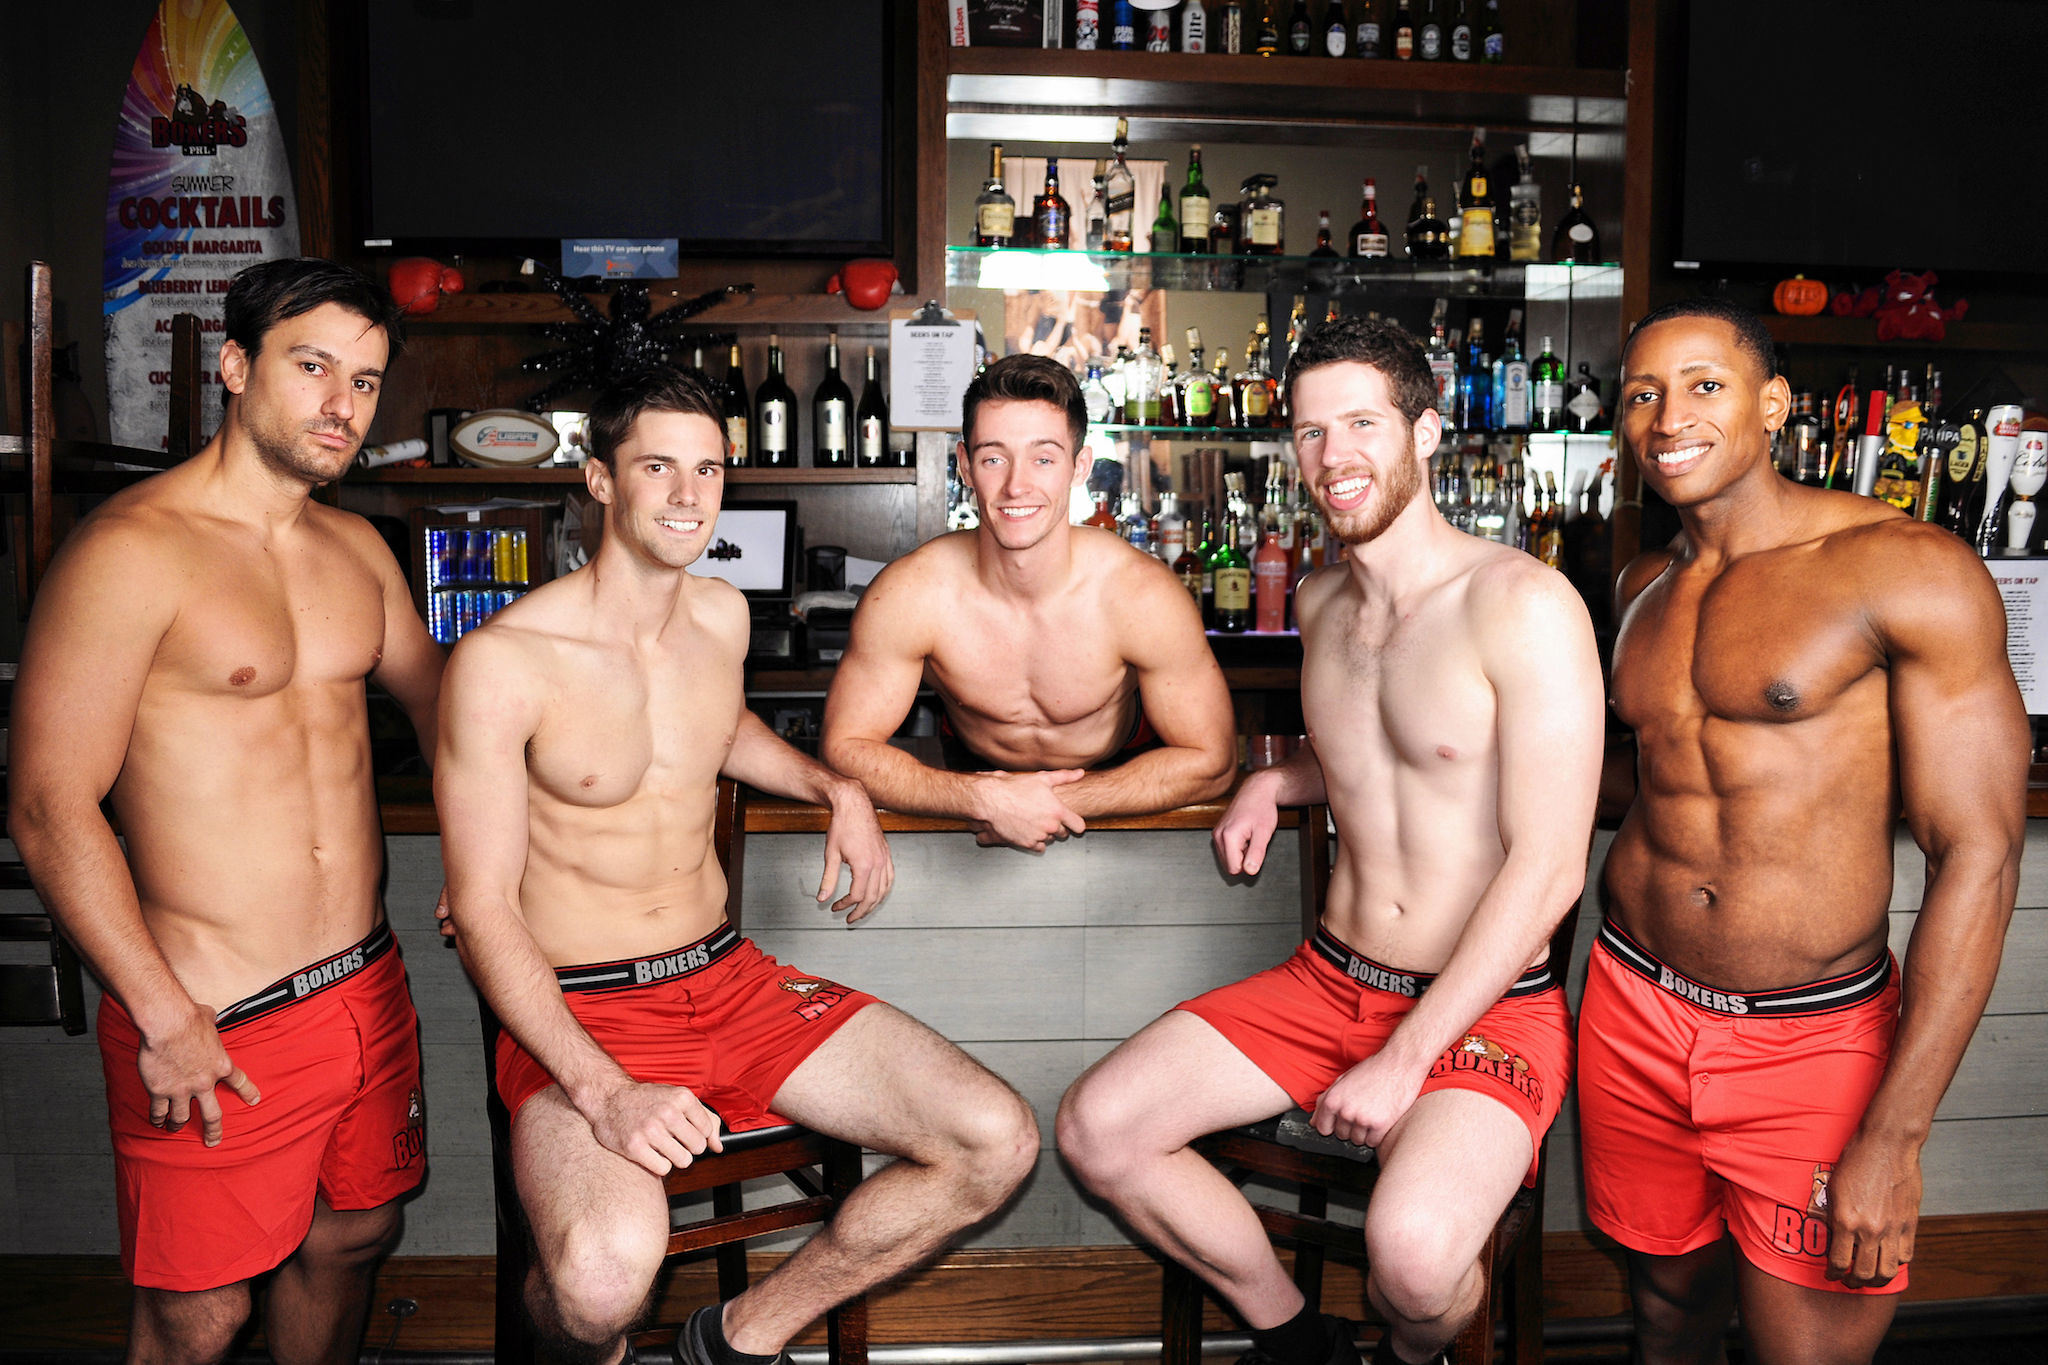 9 top gay bars in Philly